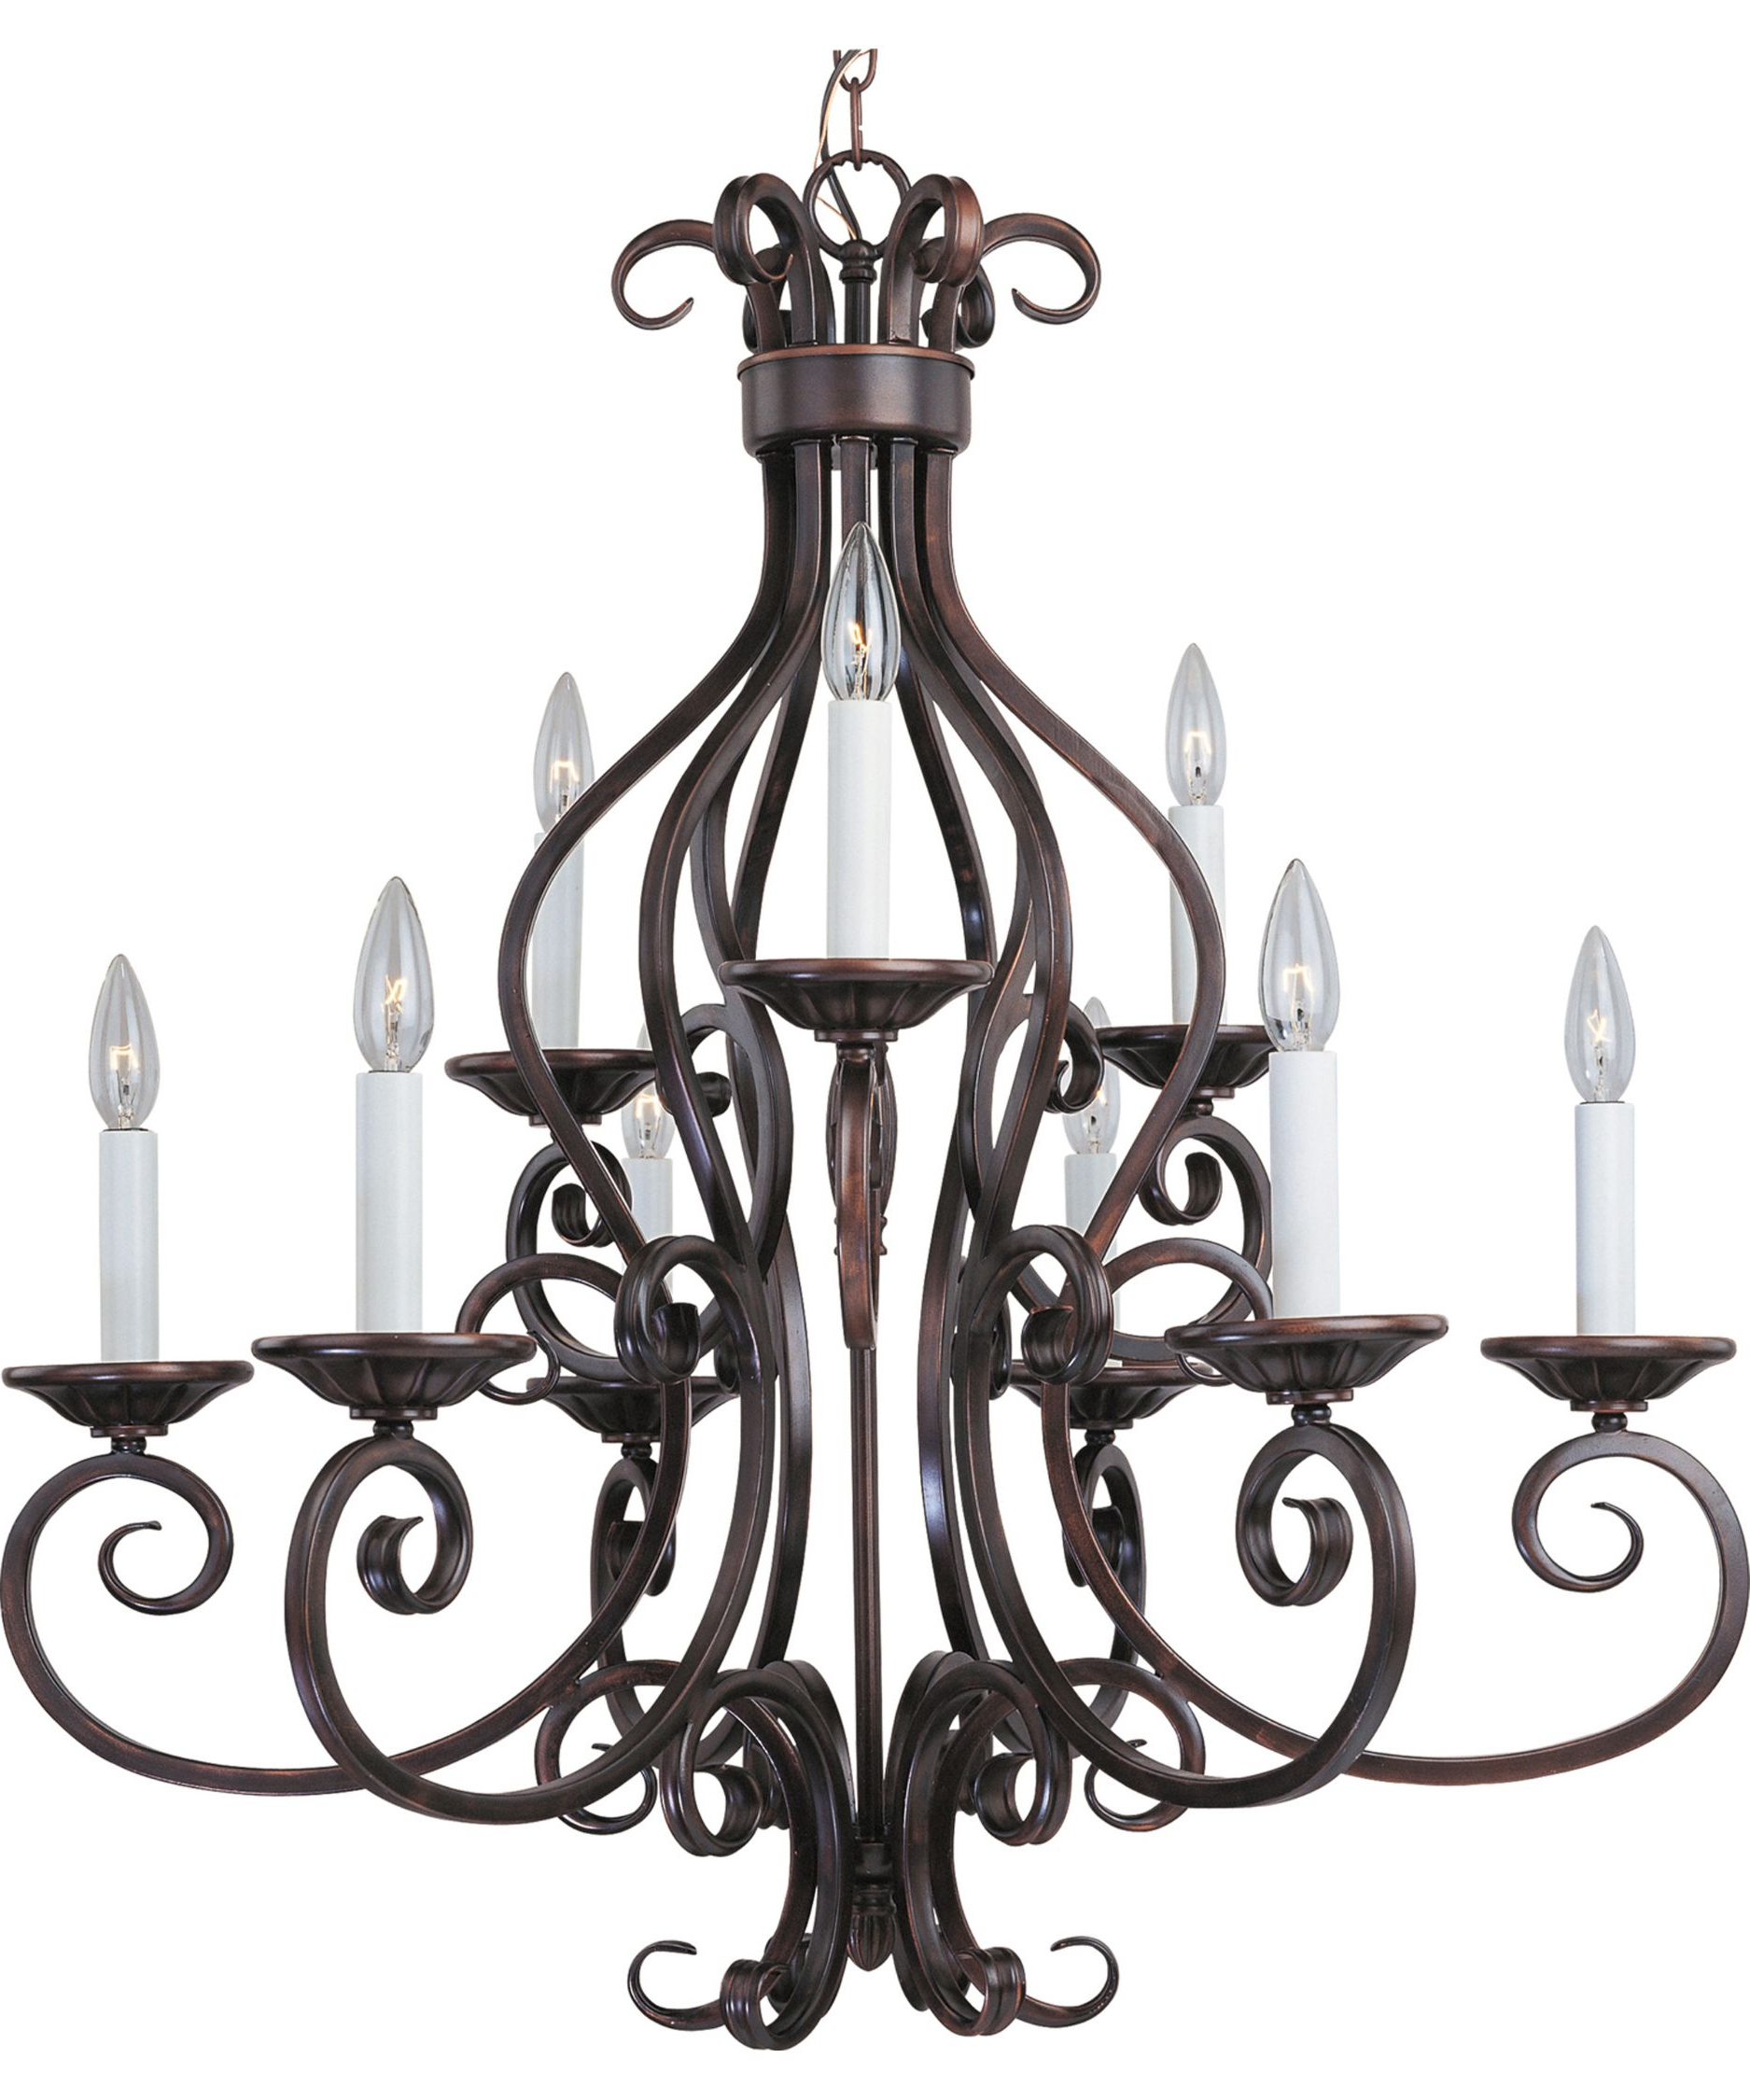 2019 Manor 29 Inch 9 Light Chandeliermaxim Lighting With Gaines 9 Light Candle Style Chandeliers (Gallery 16 of 20)